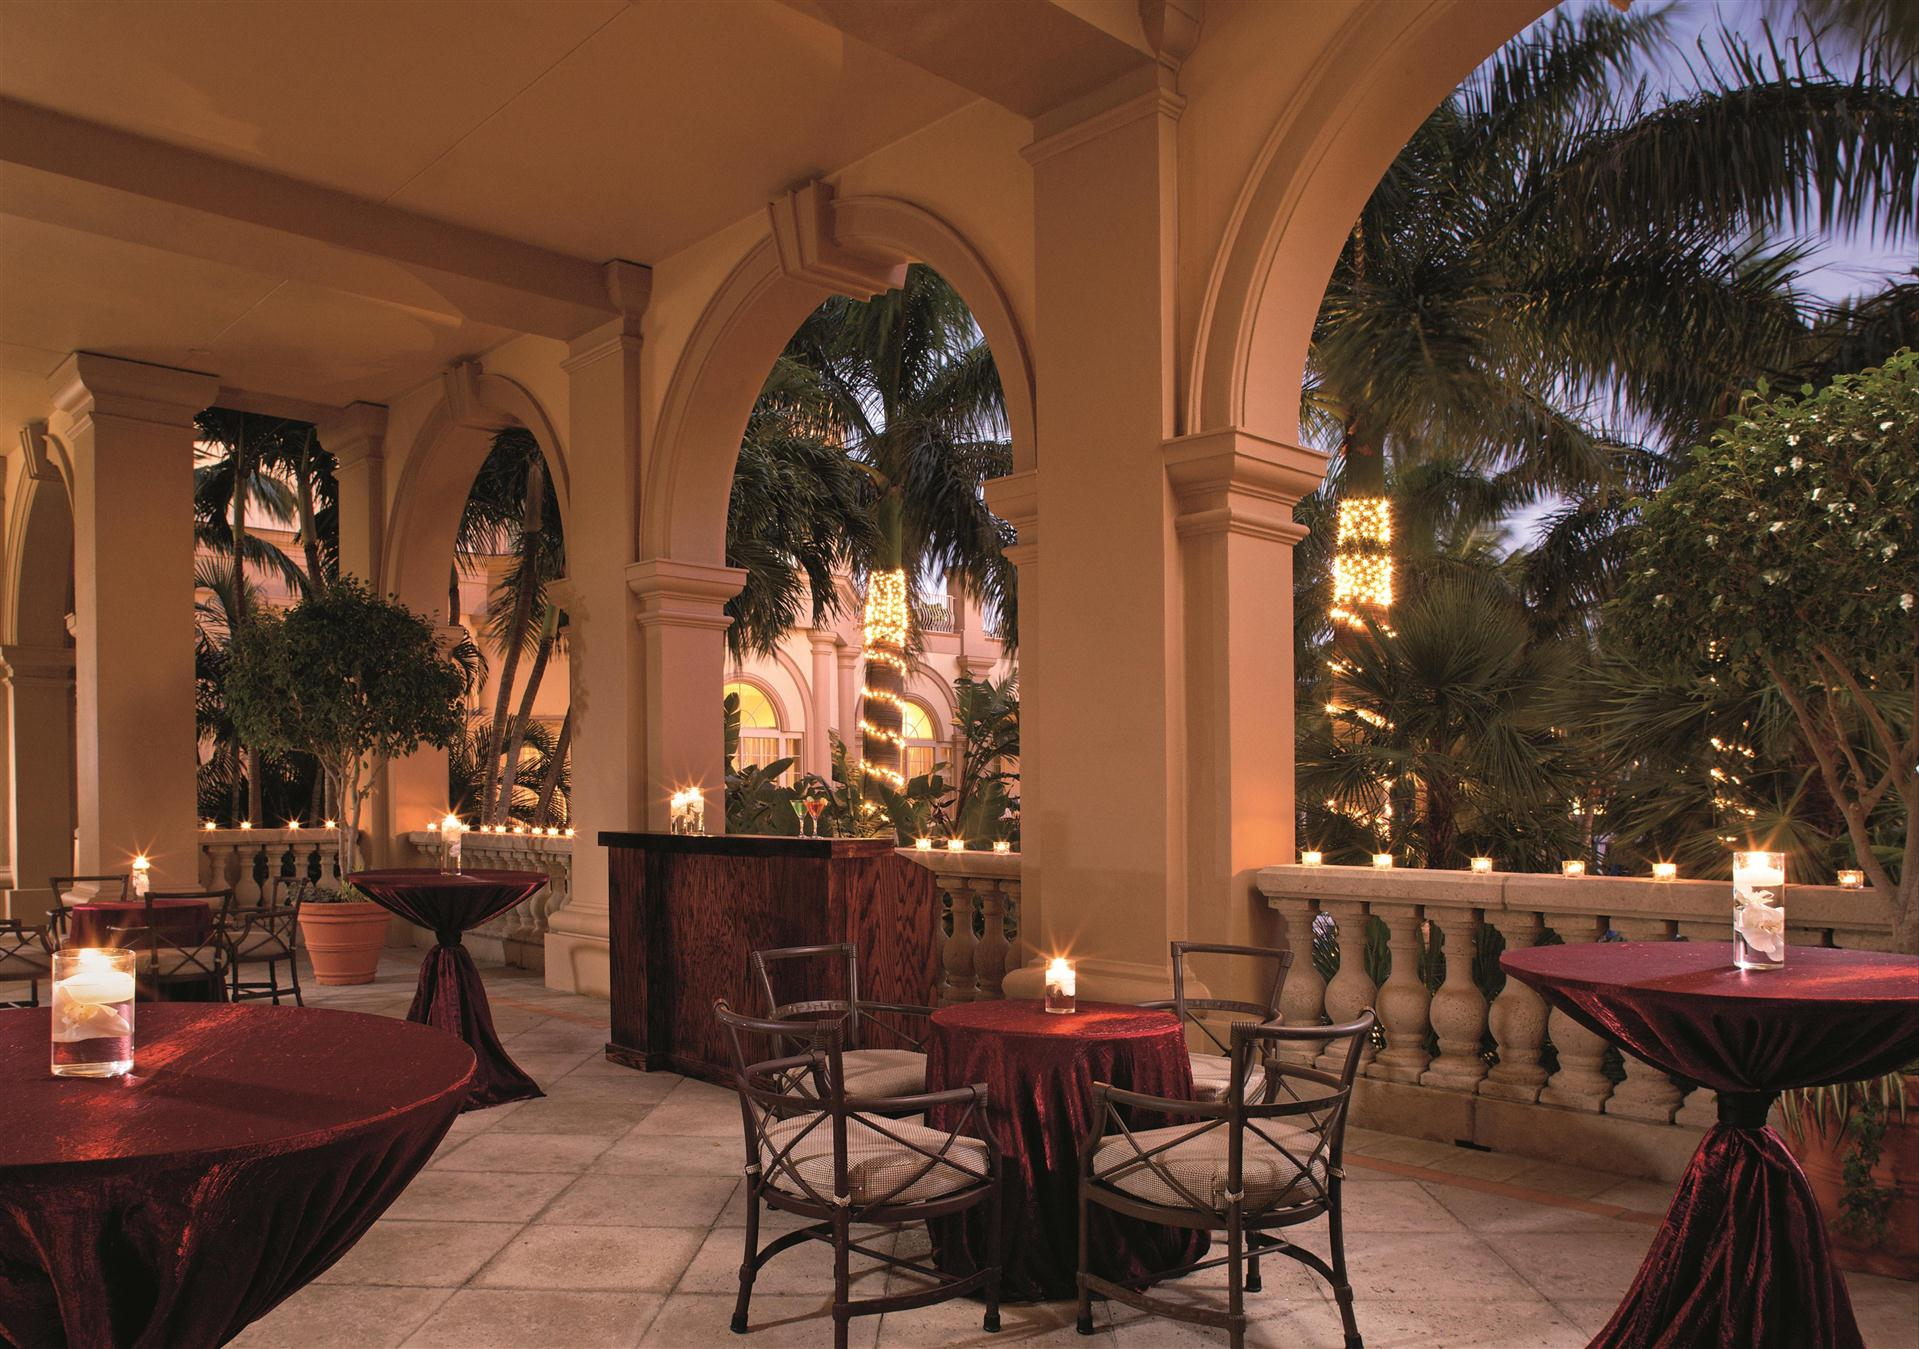 Meetings and events at The Ritz-Carlton, Naples, Naples, FL, US